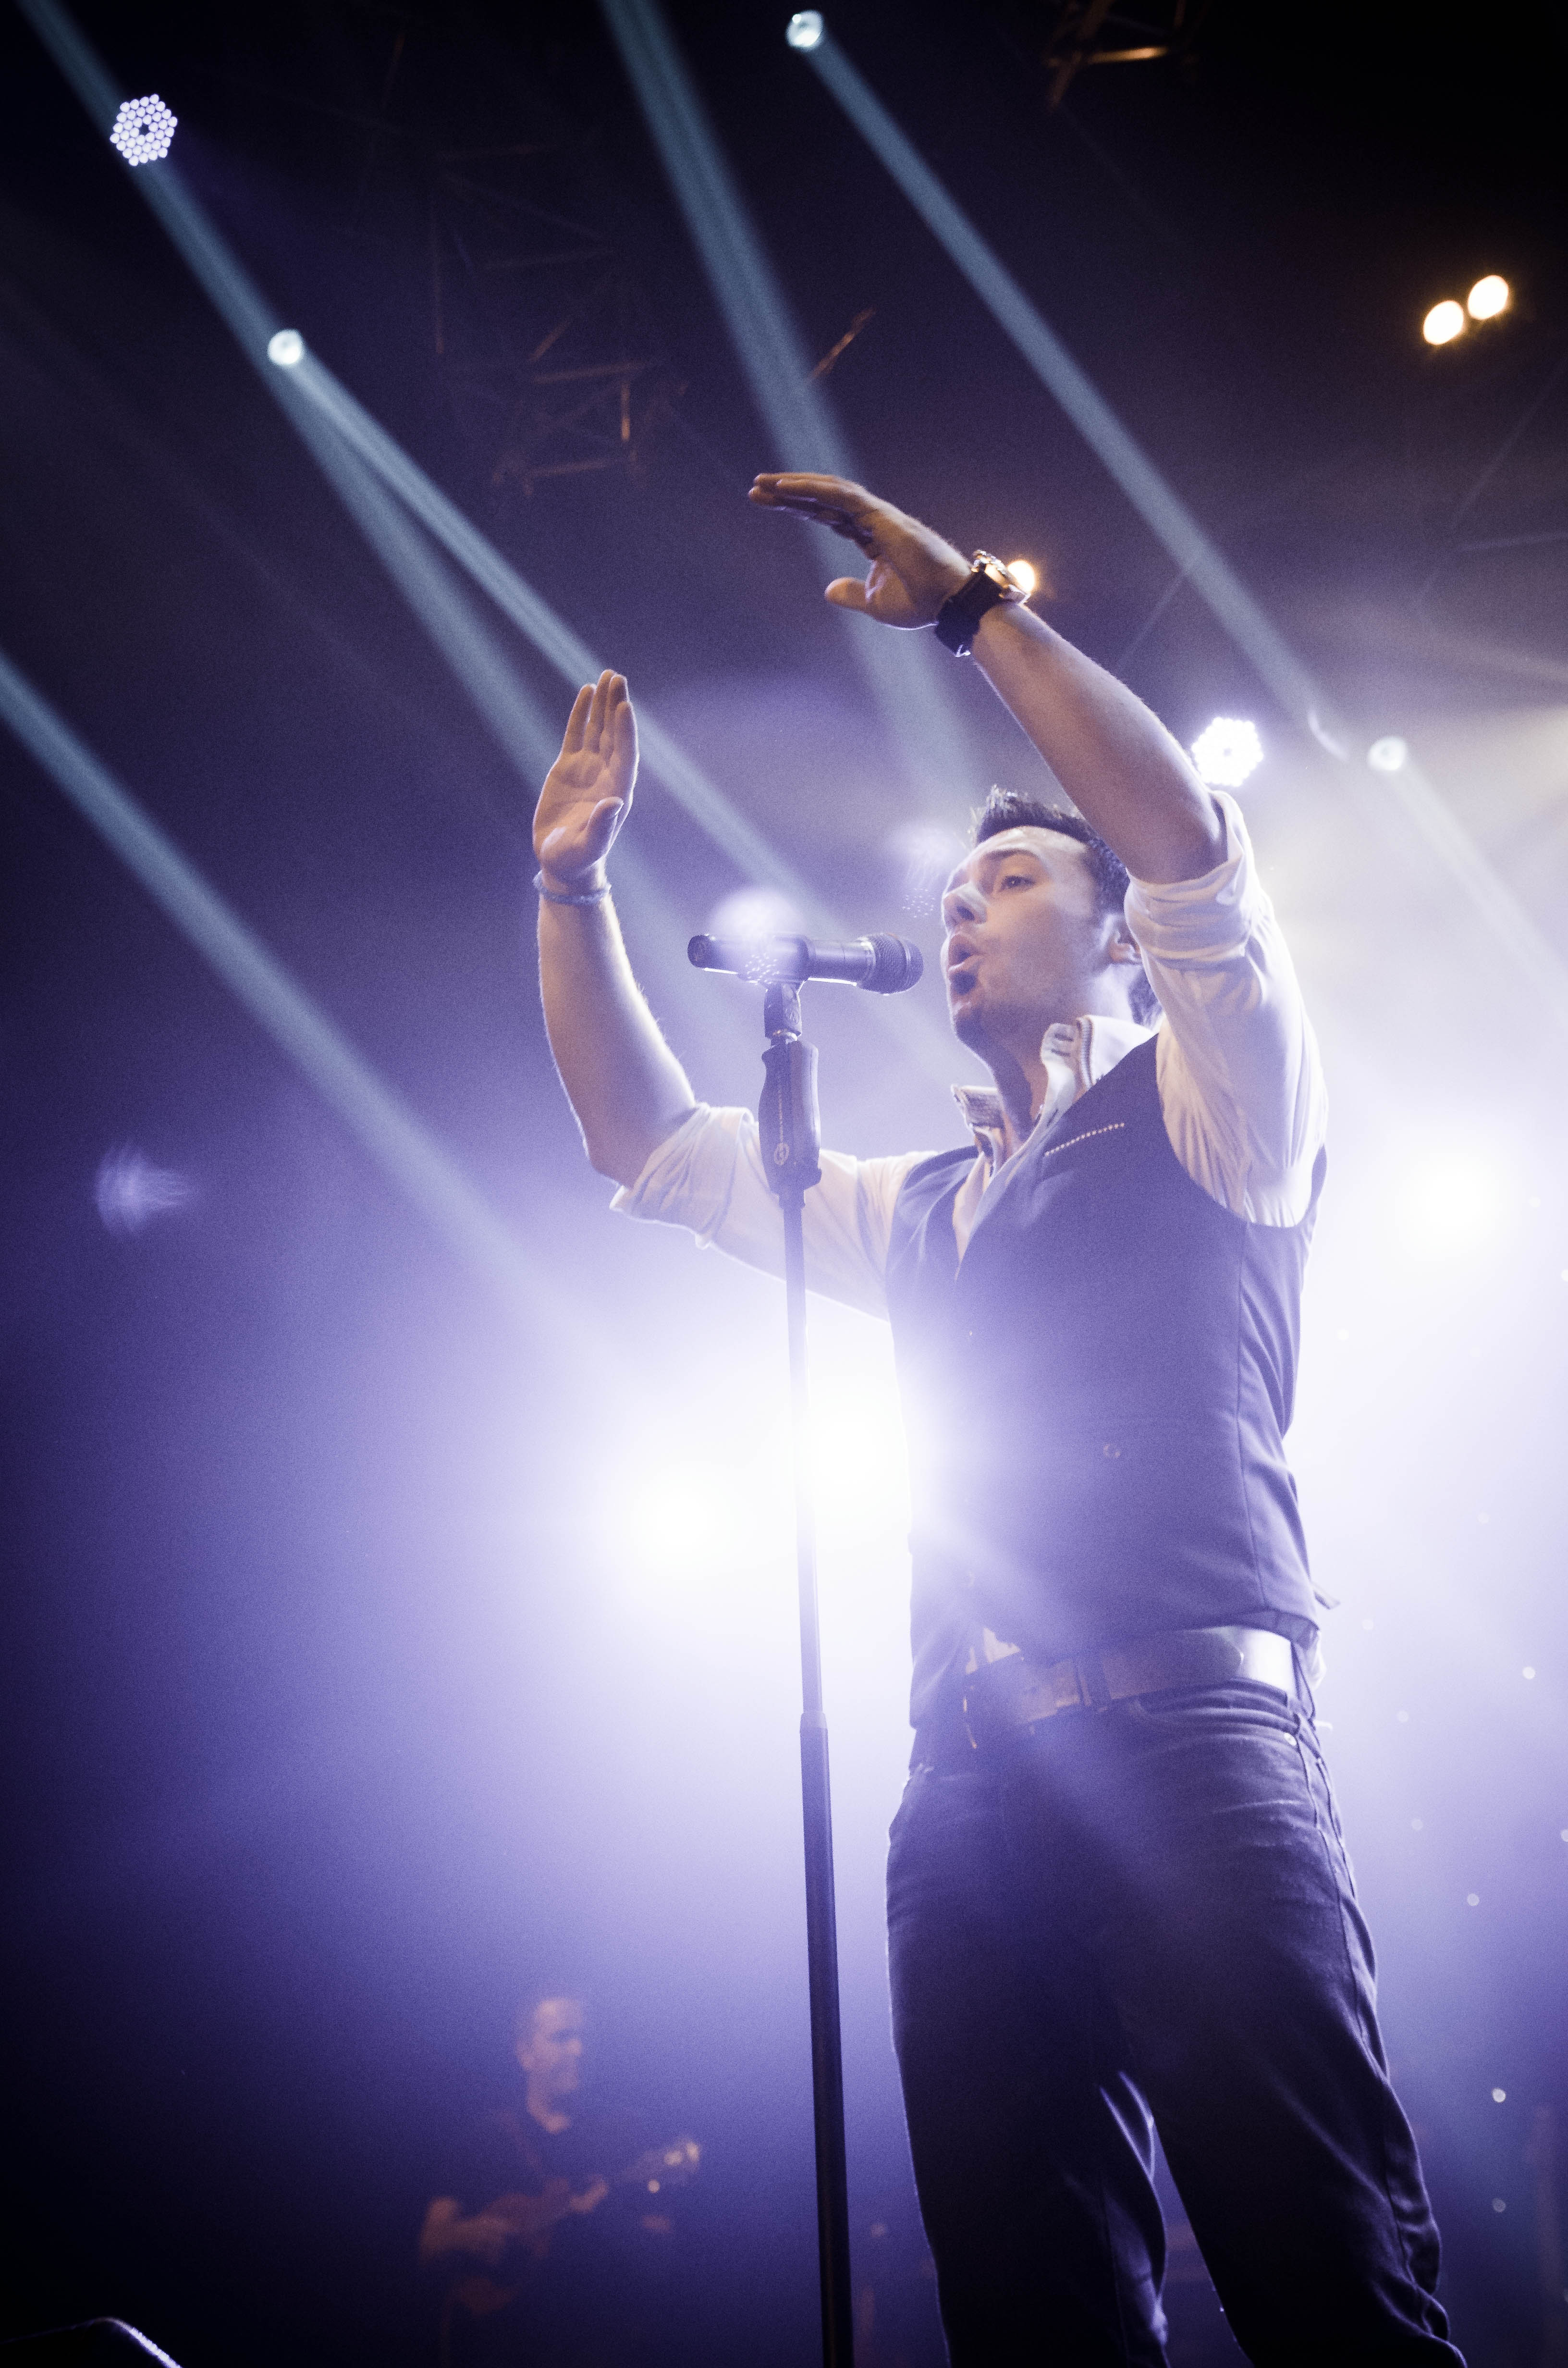 nathan-carter-at-the-marquee-cork-by-sean-smyth-15-6-14-36-of-55